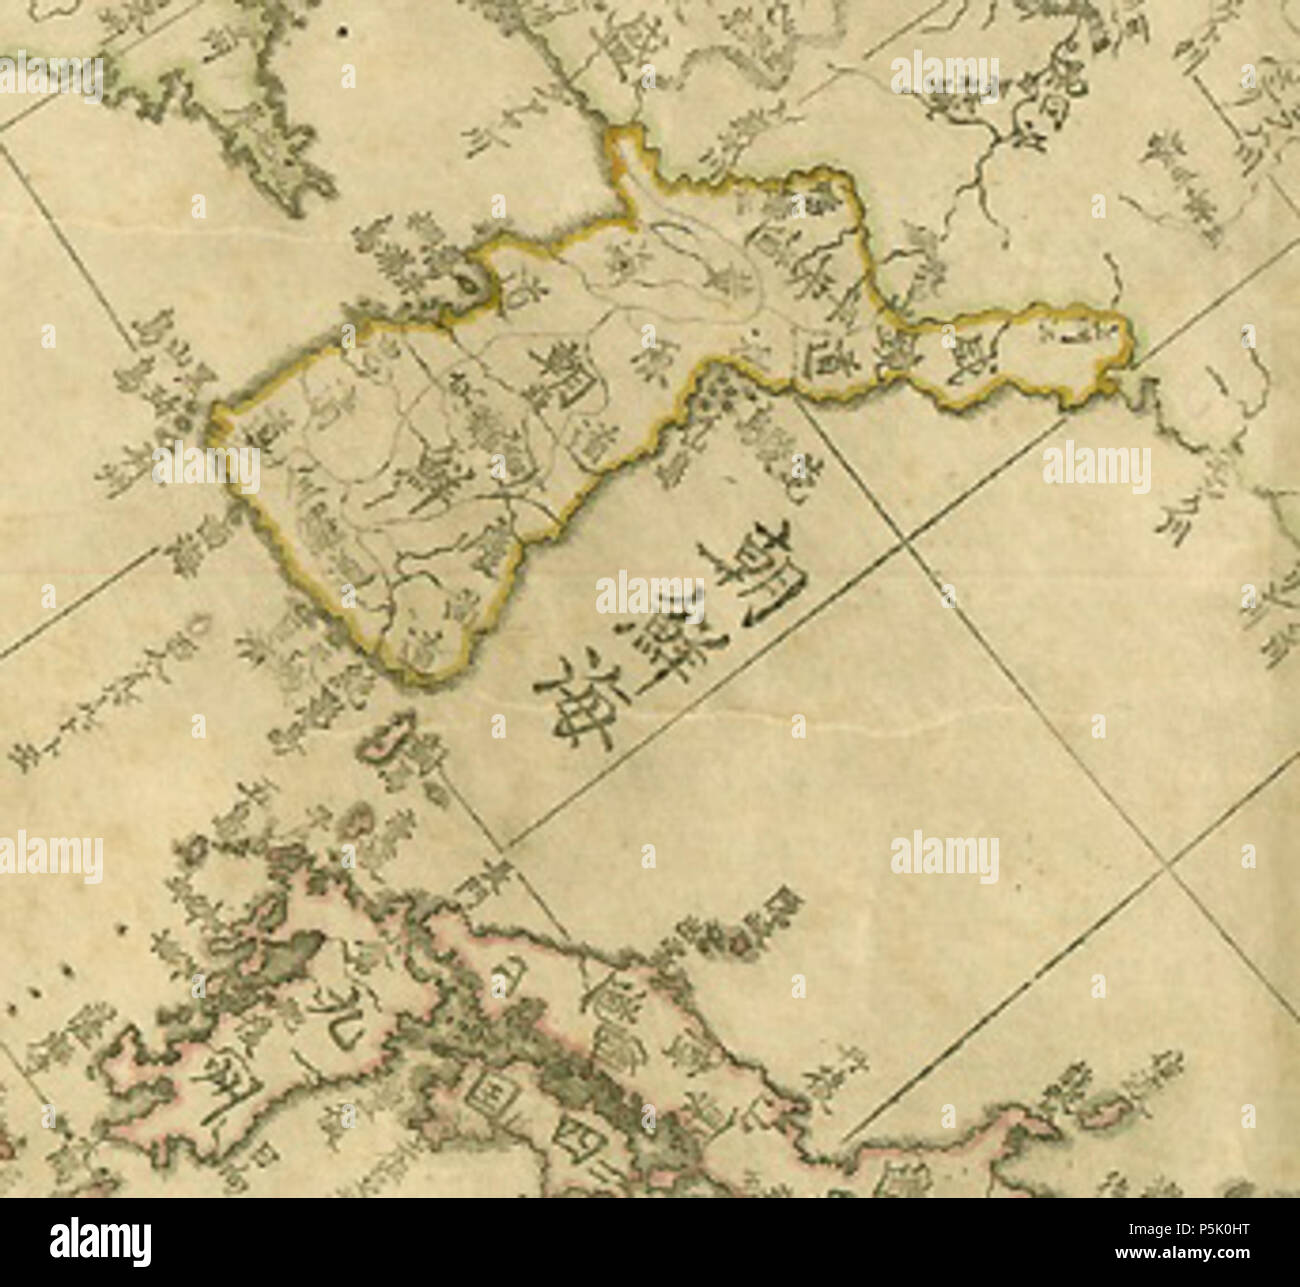 N A English Japanese Map The Map 202 Centimeters In Length And